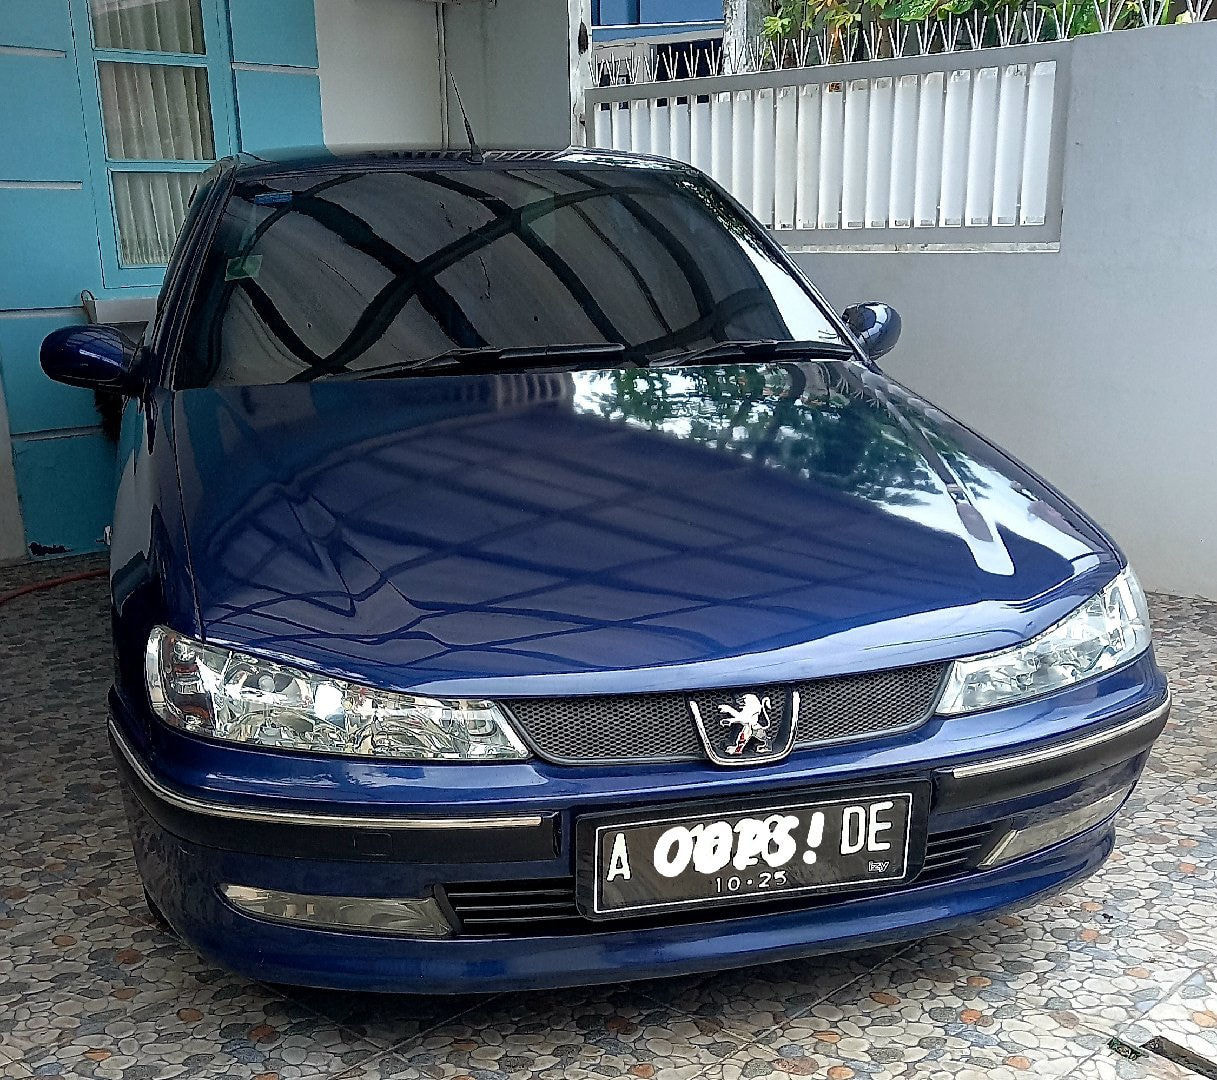 2000 Peugeot 406 Limited